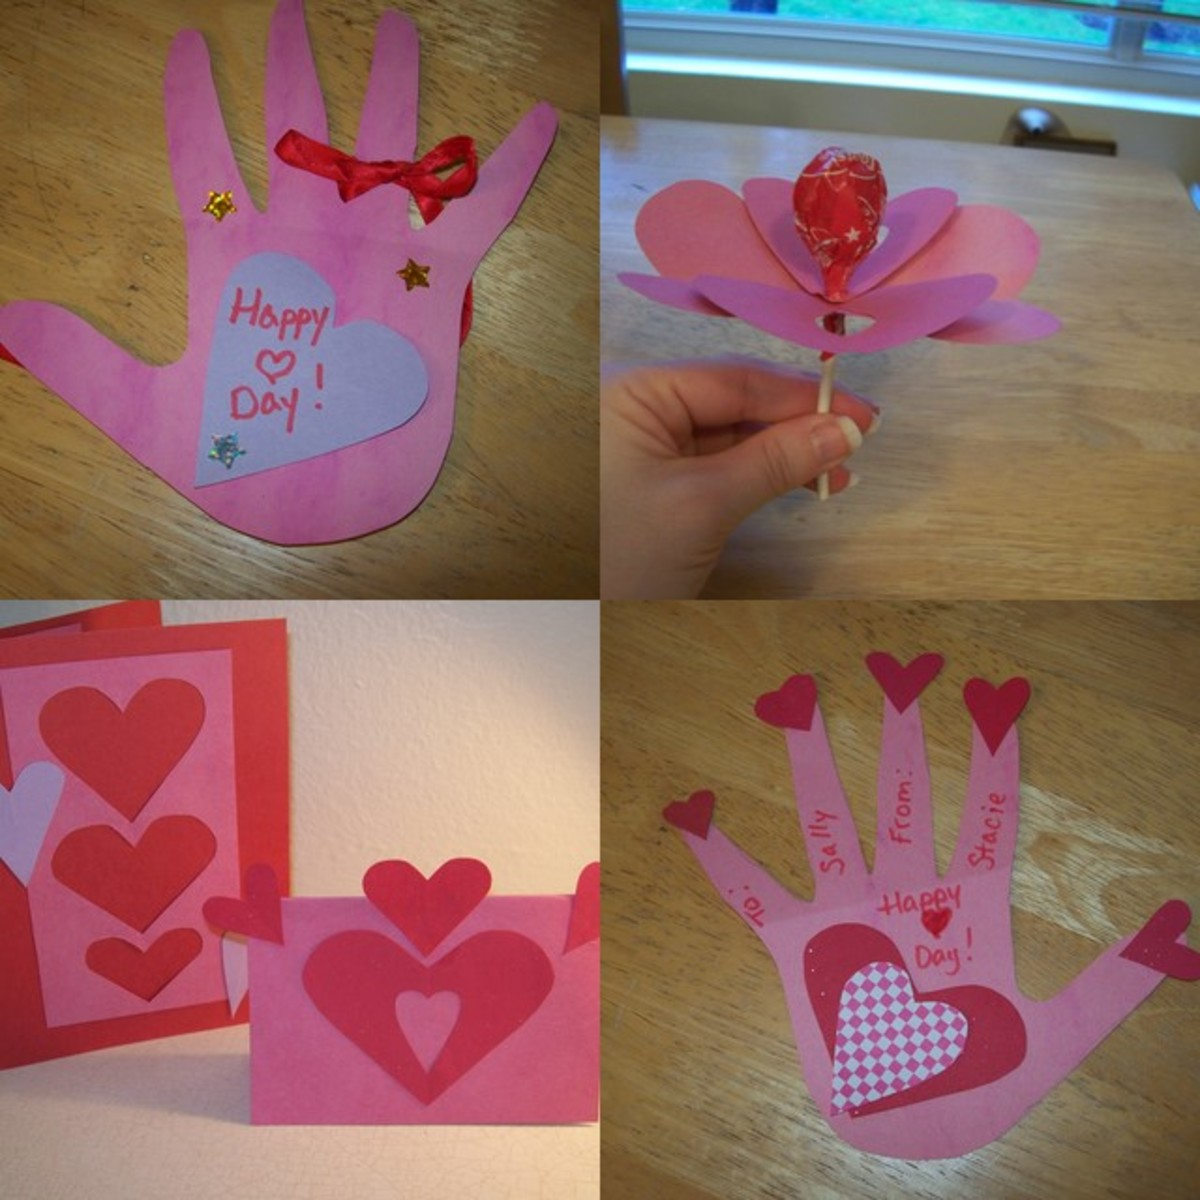 Homemade Valentine Cards Fun Project for Kids – Toddler Valentine Cards